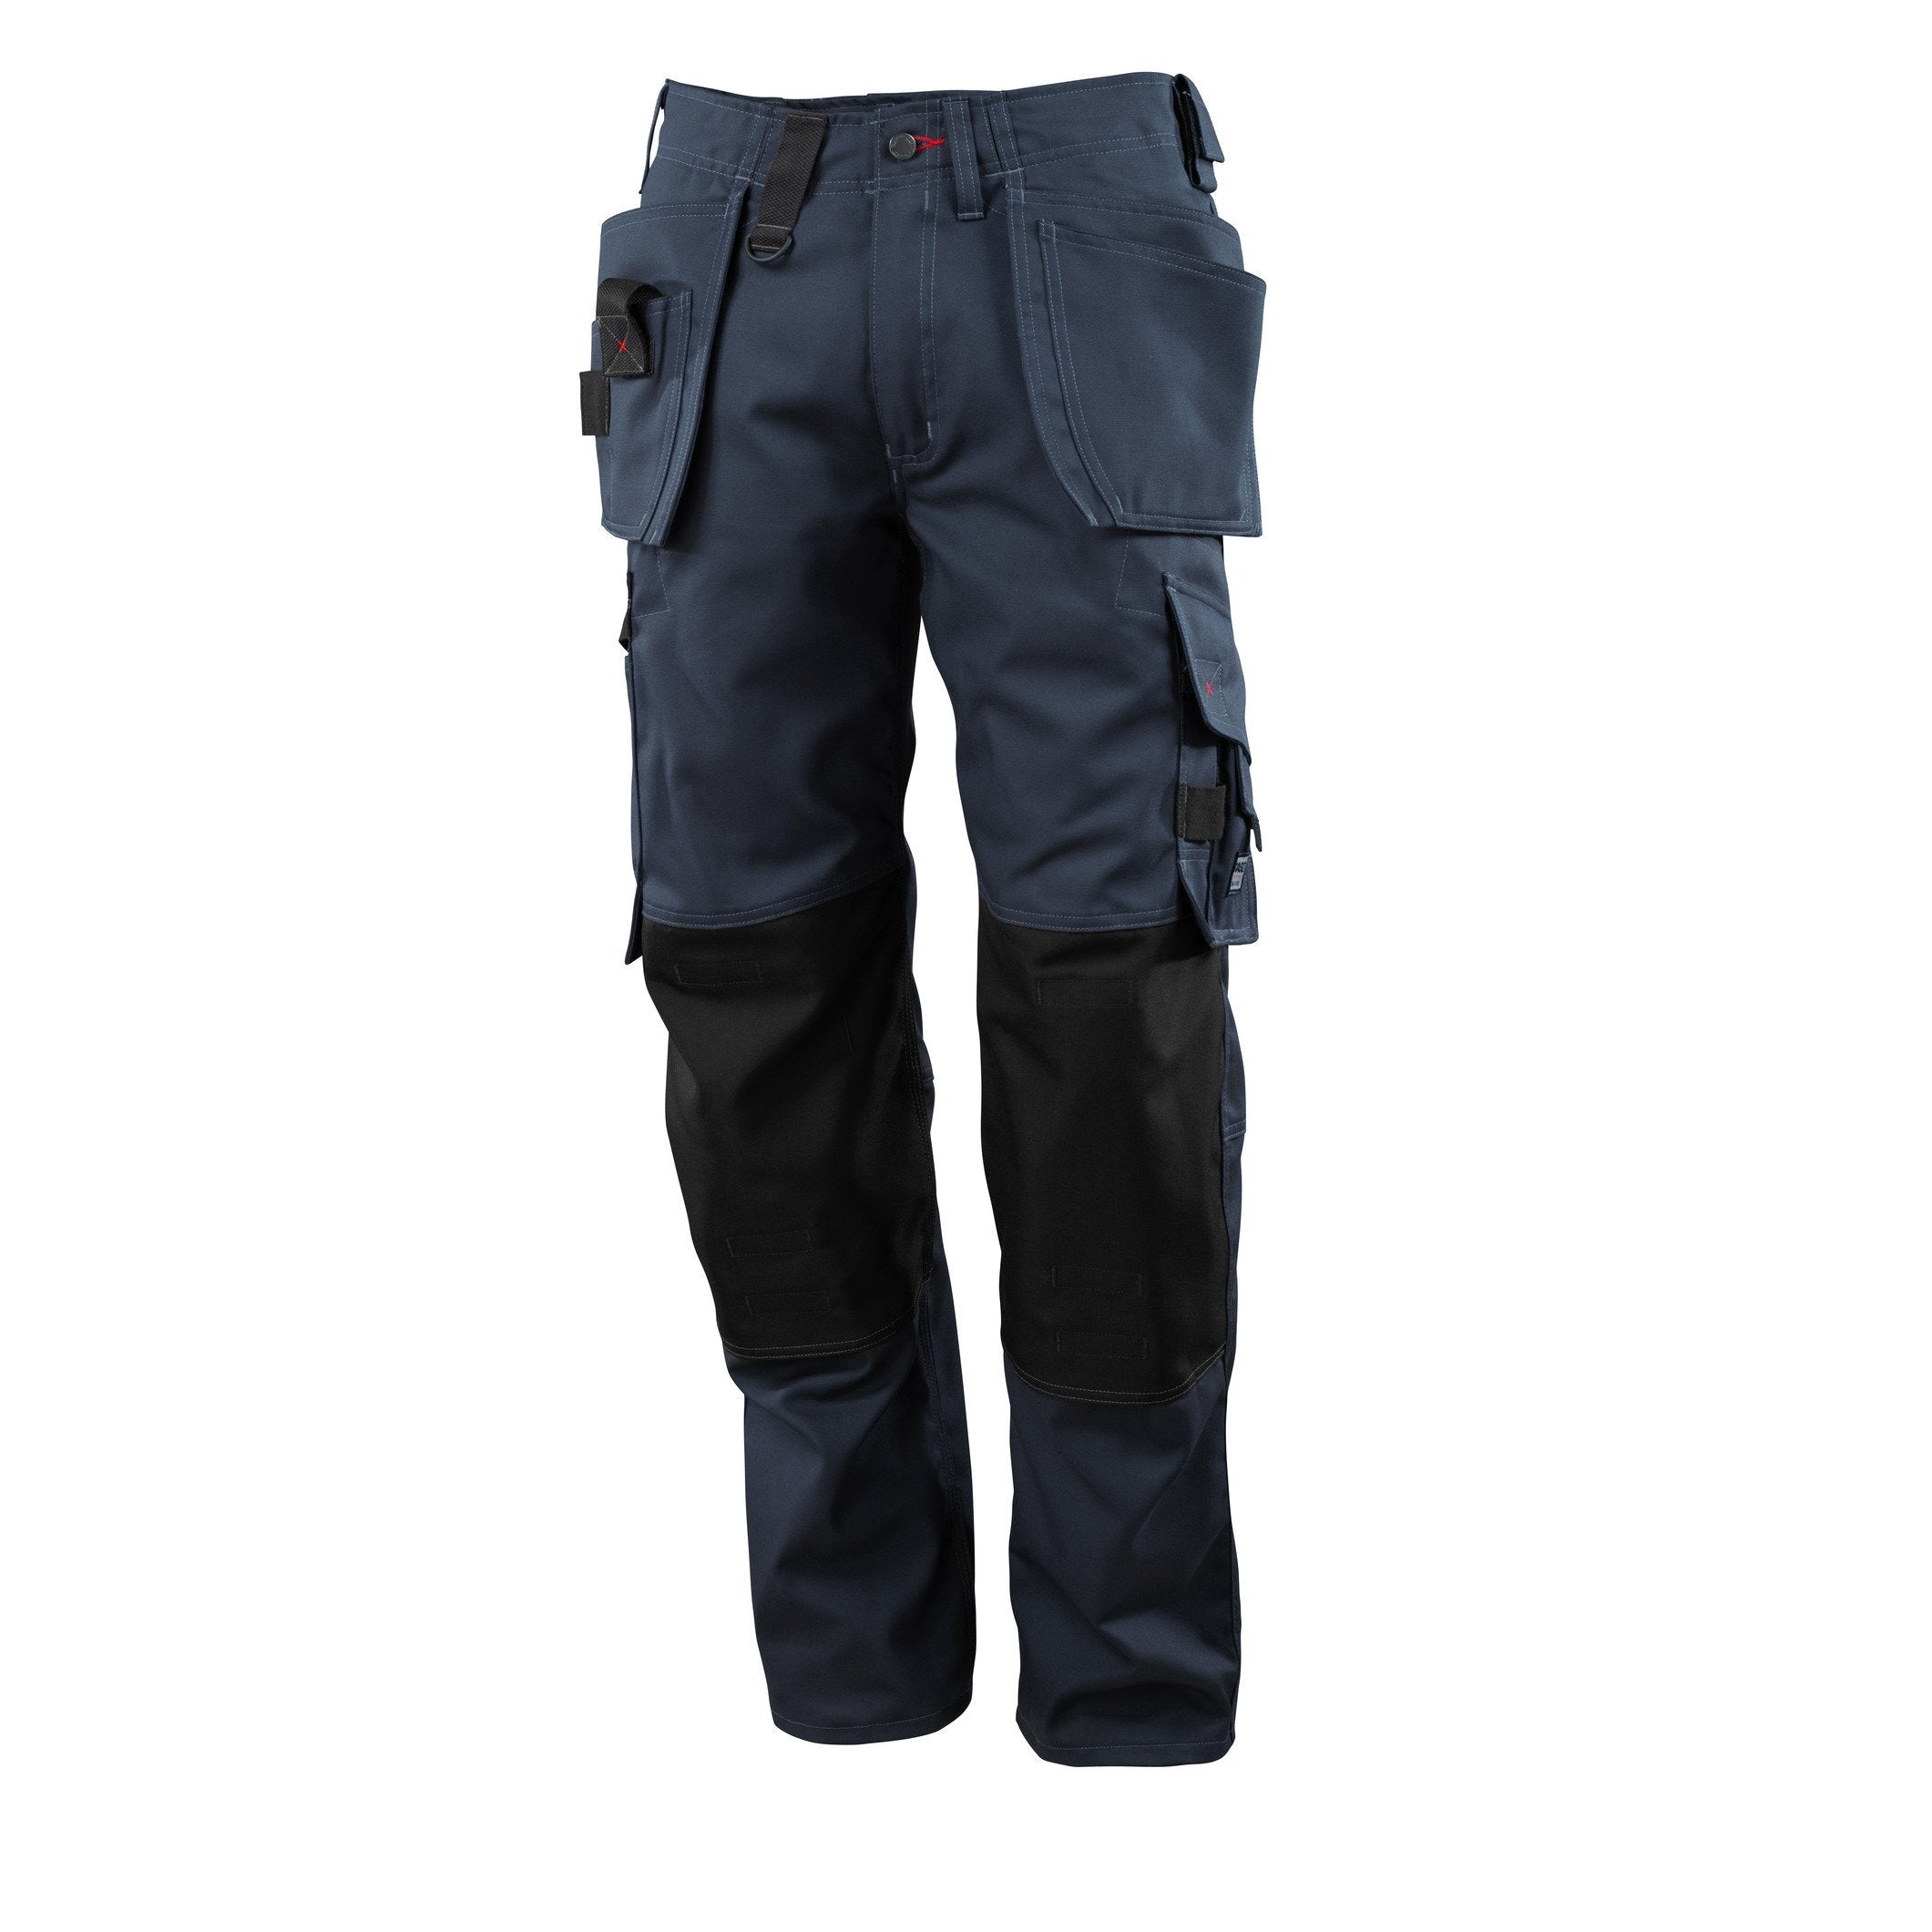 Mascot Lindos Frontline Trousers With Kneepad Pockets And Holster Pockets